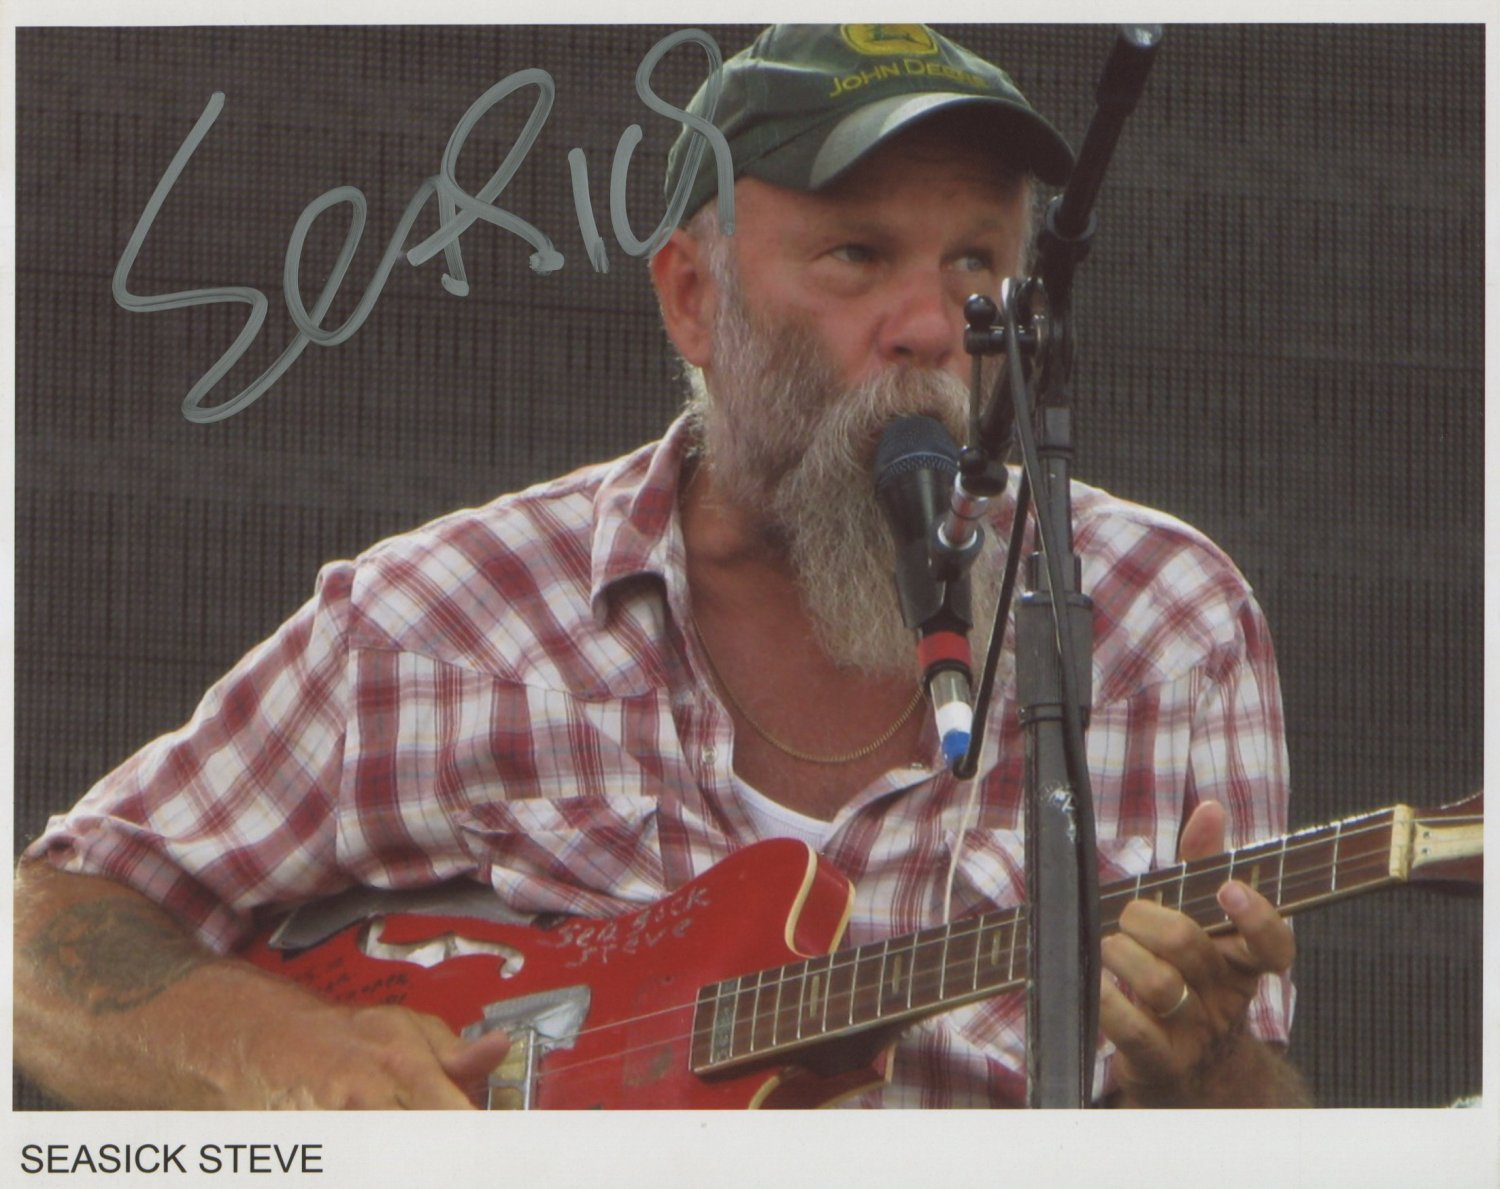 Seasick Steve SIGNED Photo 1st Generation PRINT Ltd 150 + Certificate (1)